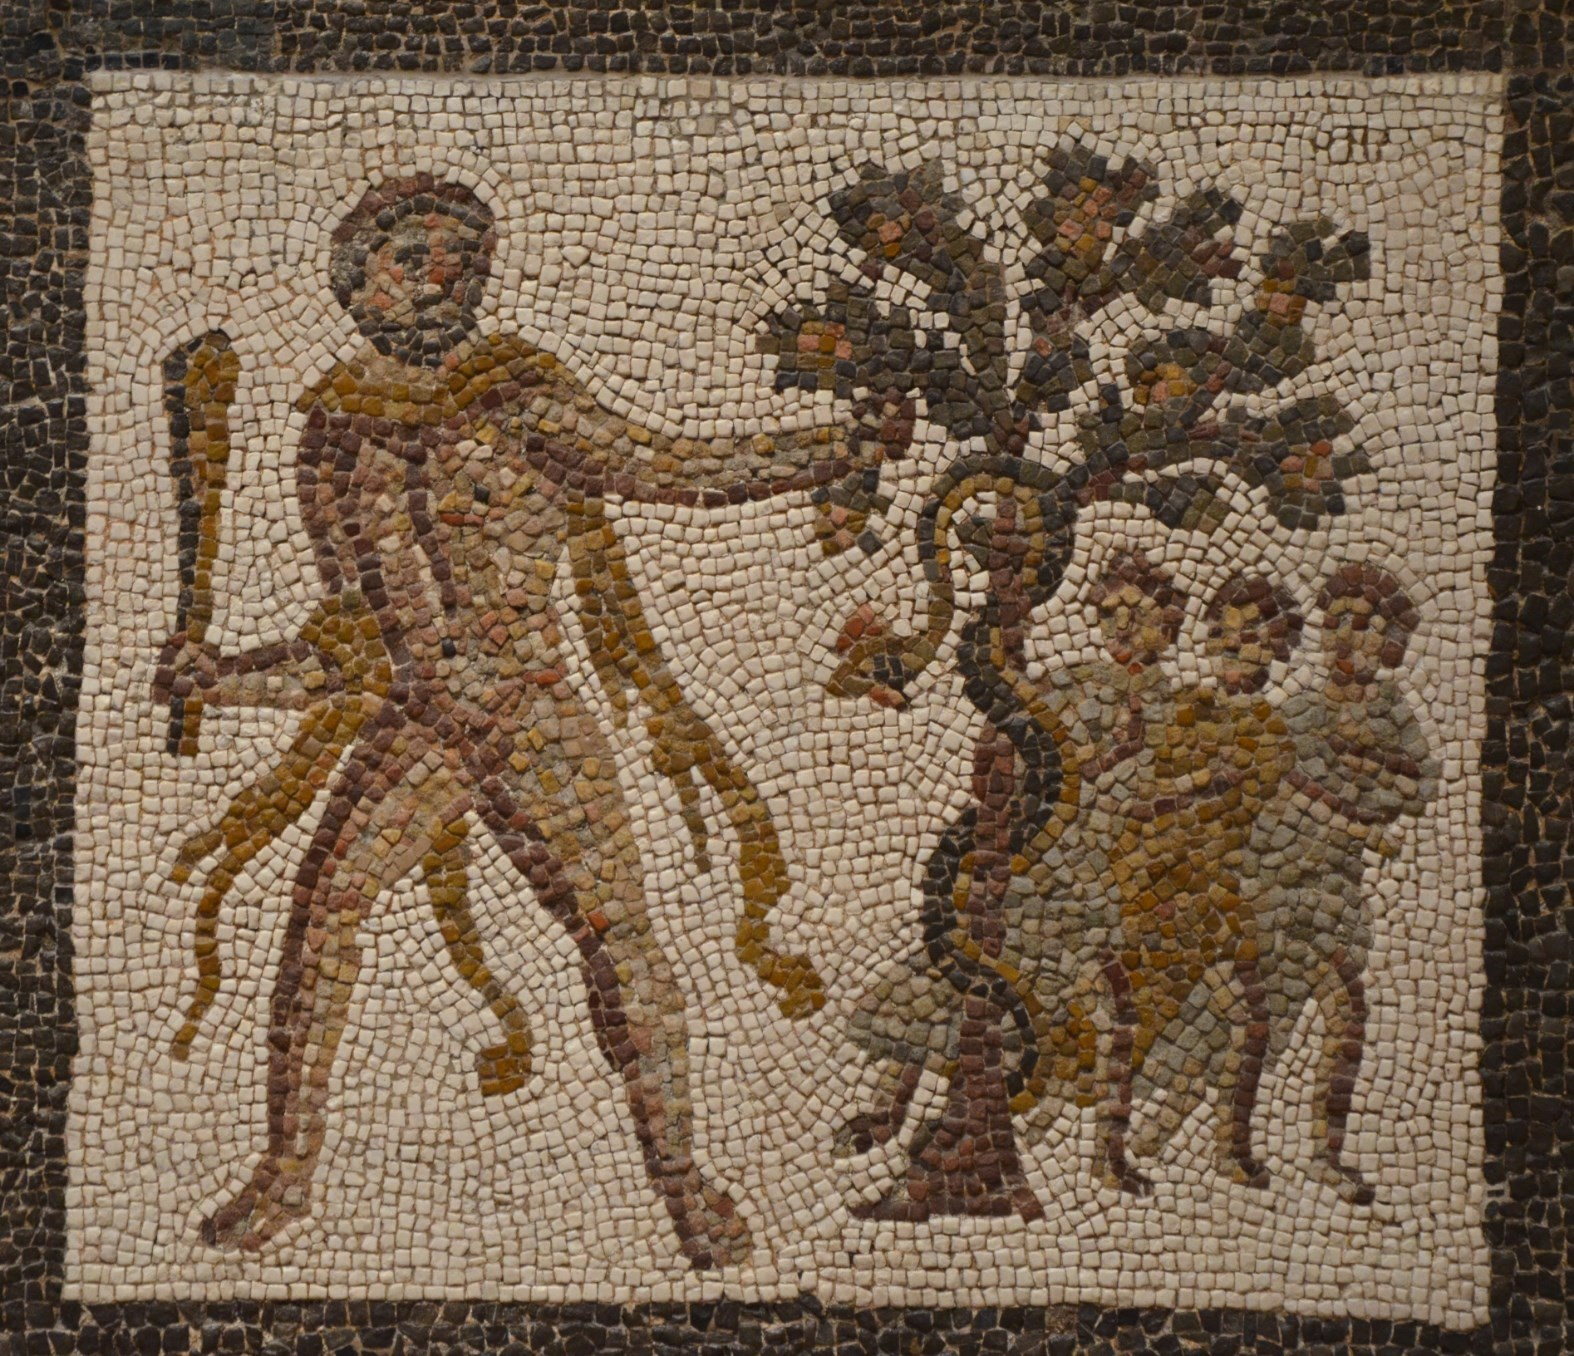 file detail of the mosaic with the labors of hercules eleventh labour apples of the hesperides. Black Bedroom Furniture Sets. Home Design Ideas